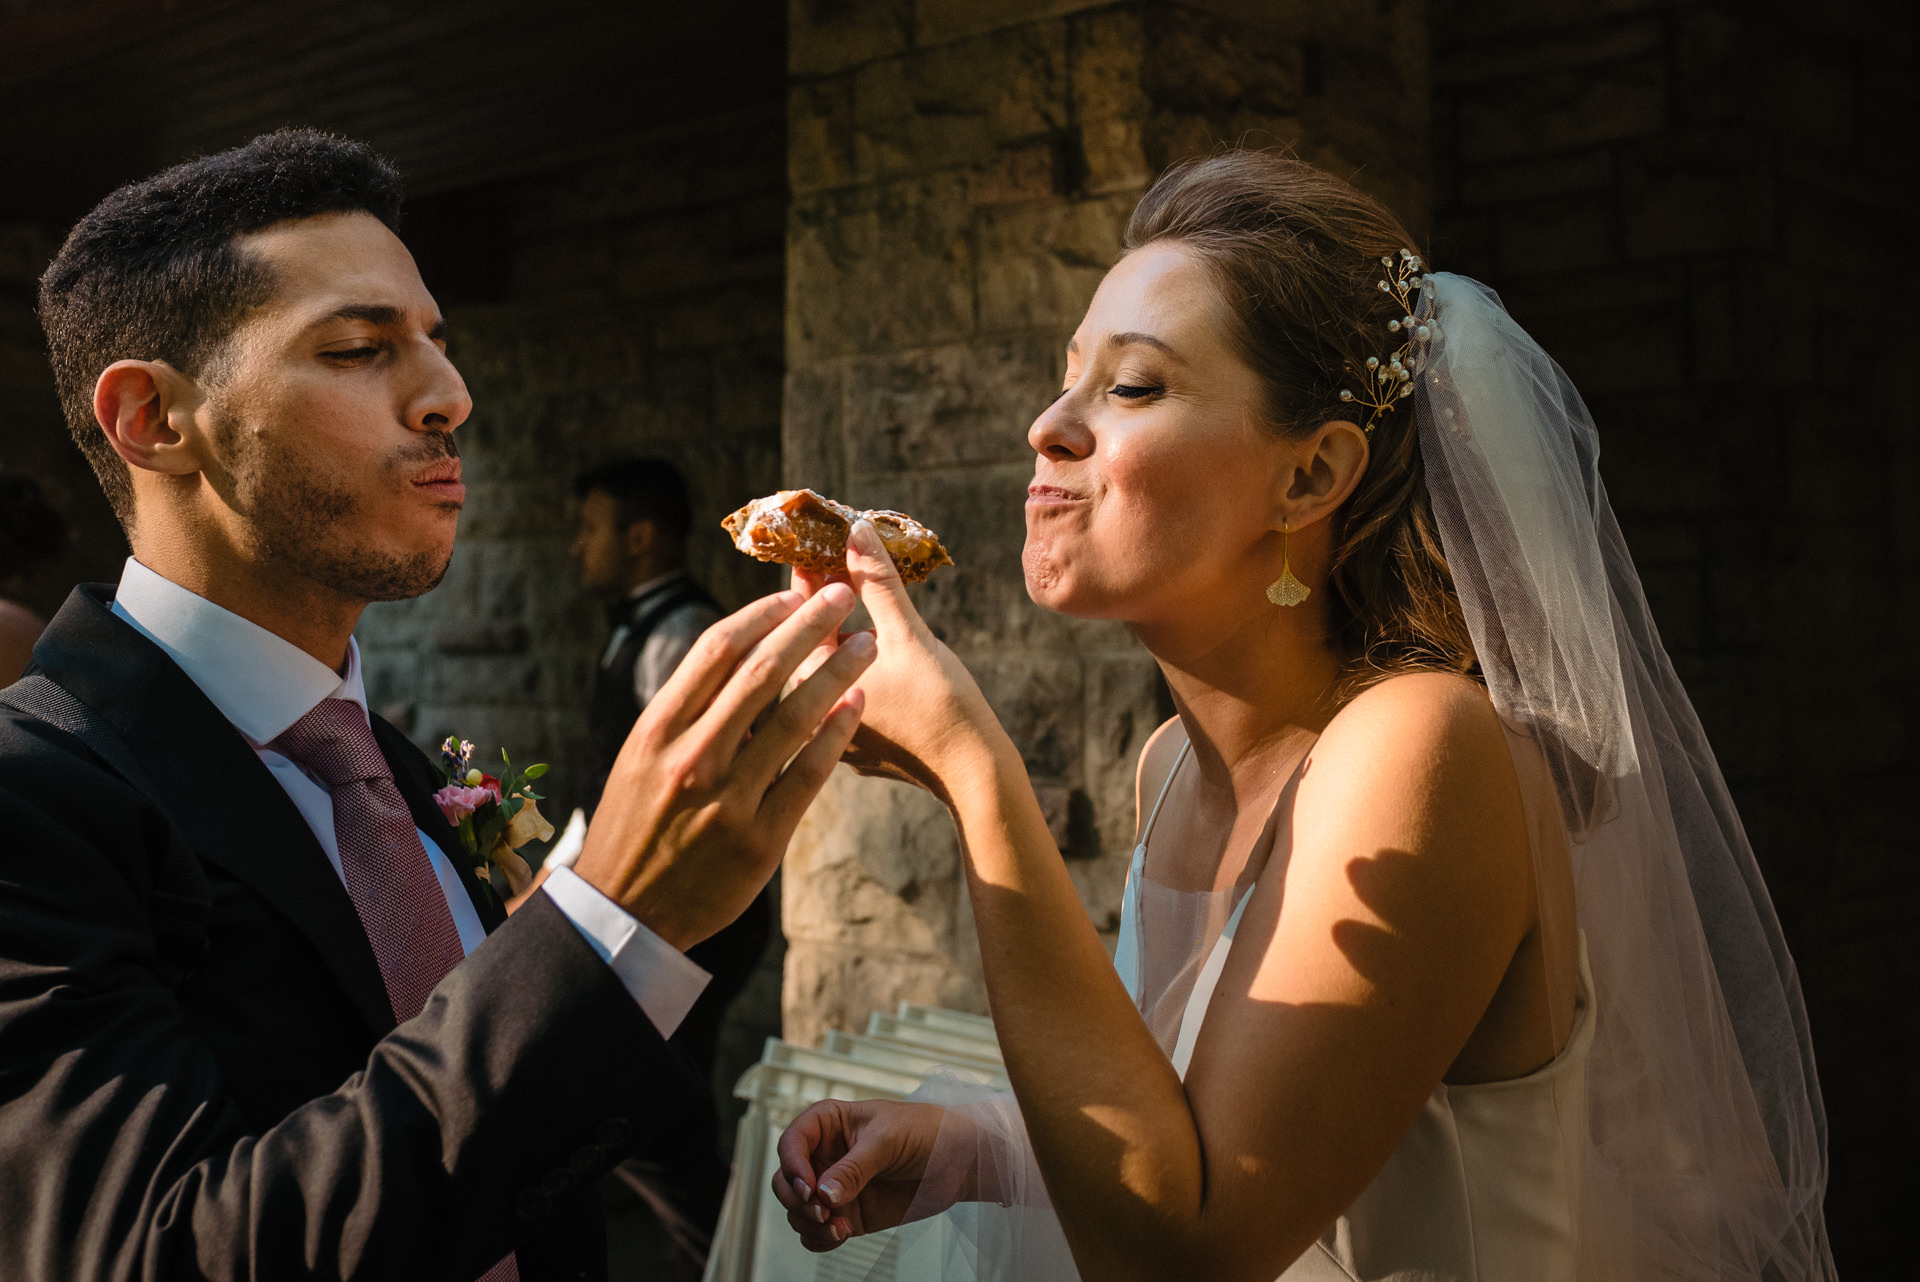 Montreal, Quebec Couple Wedding Image | The wedding couple sharing a cannoli together